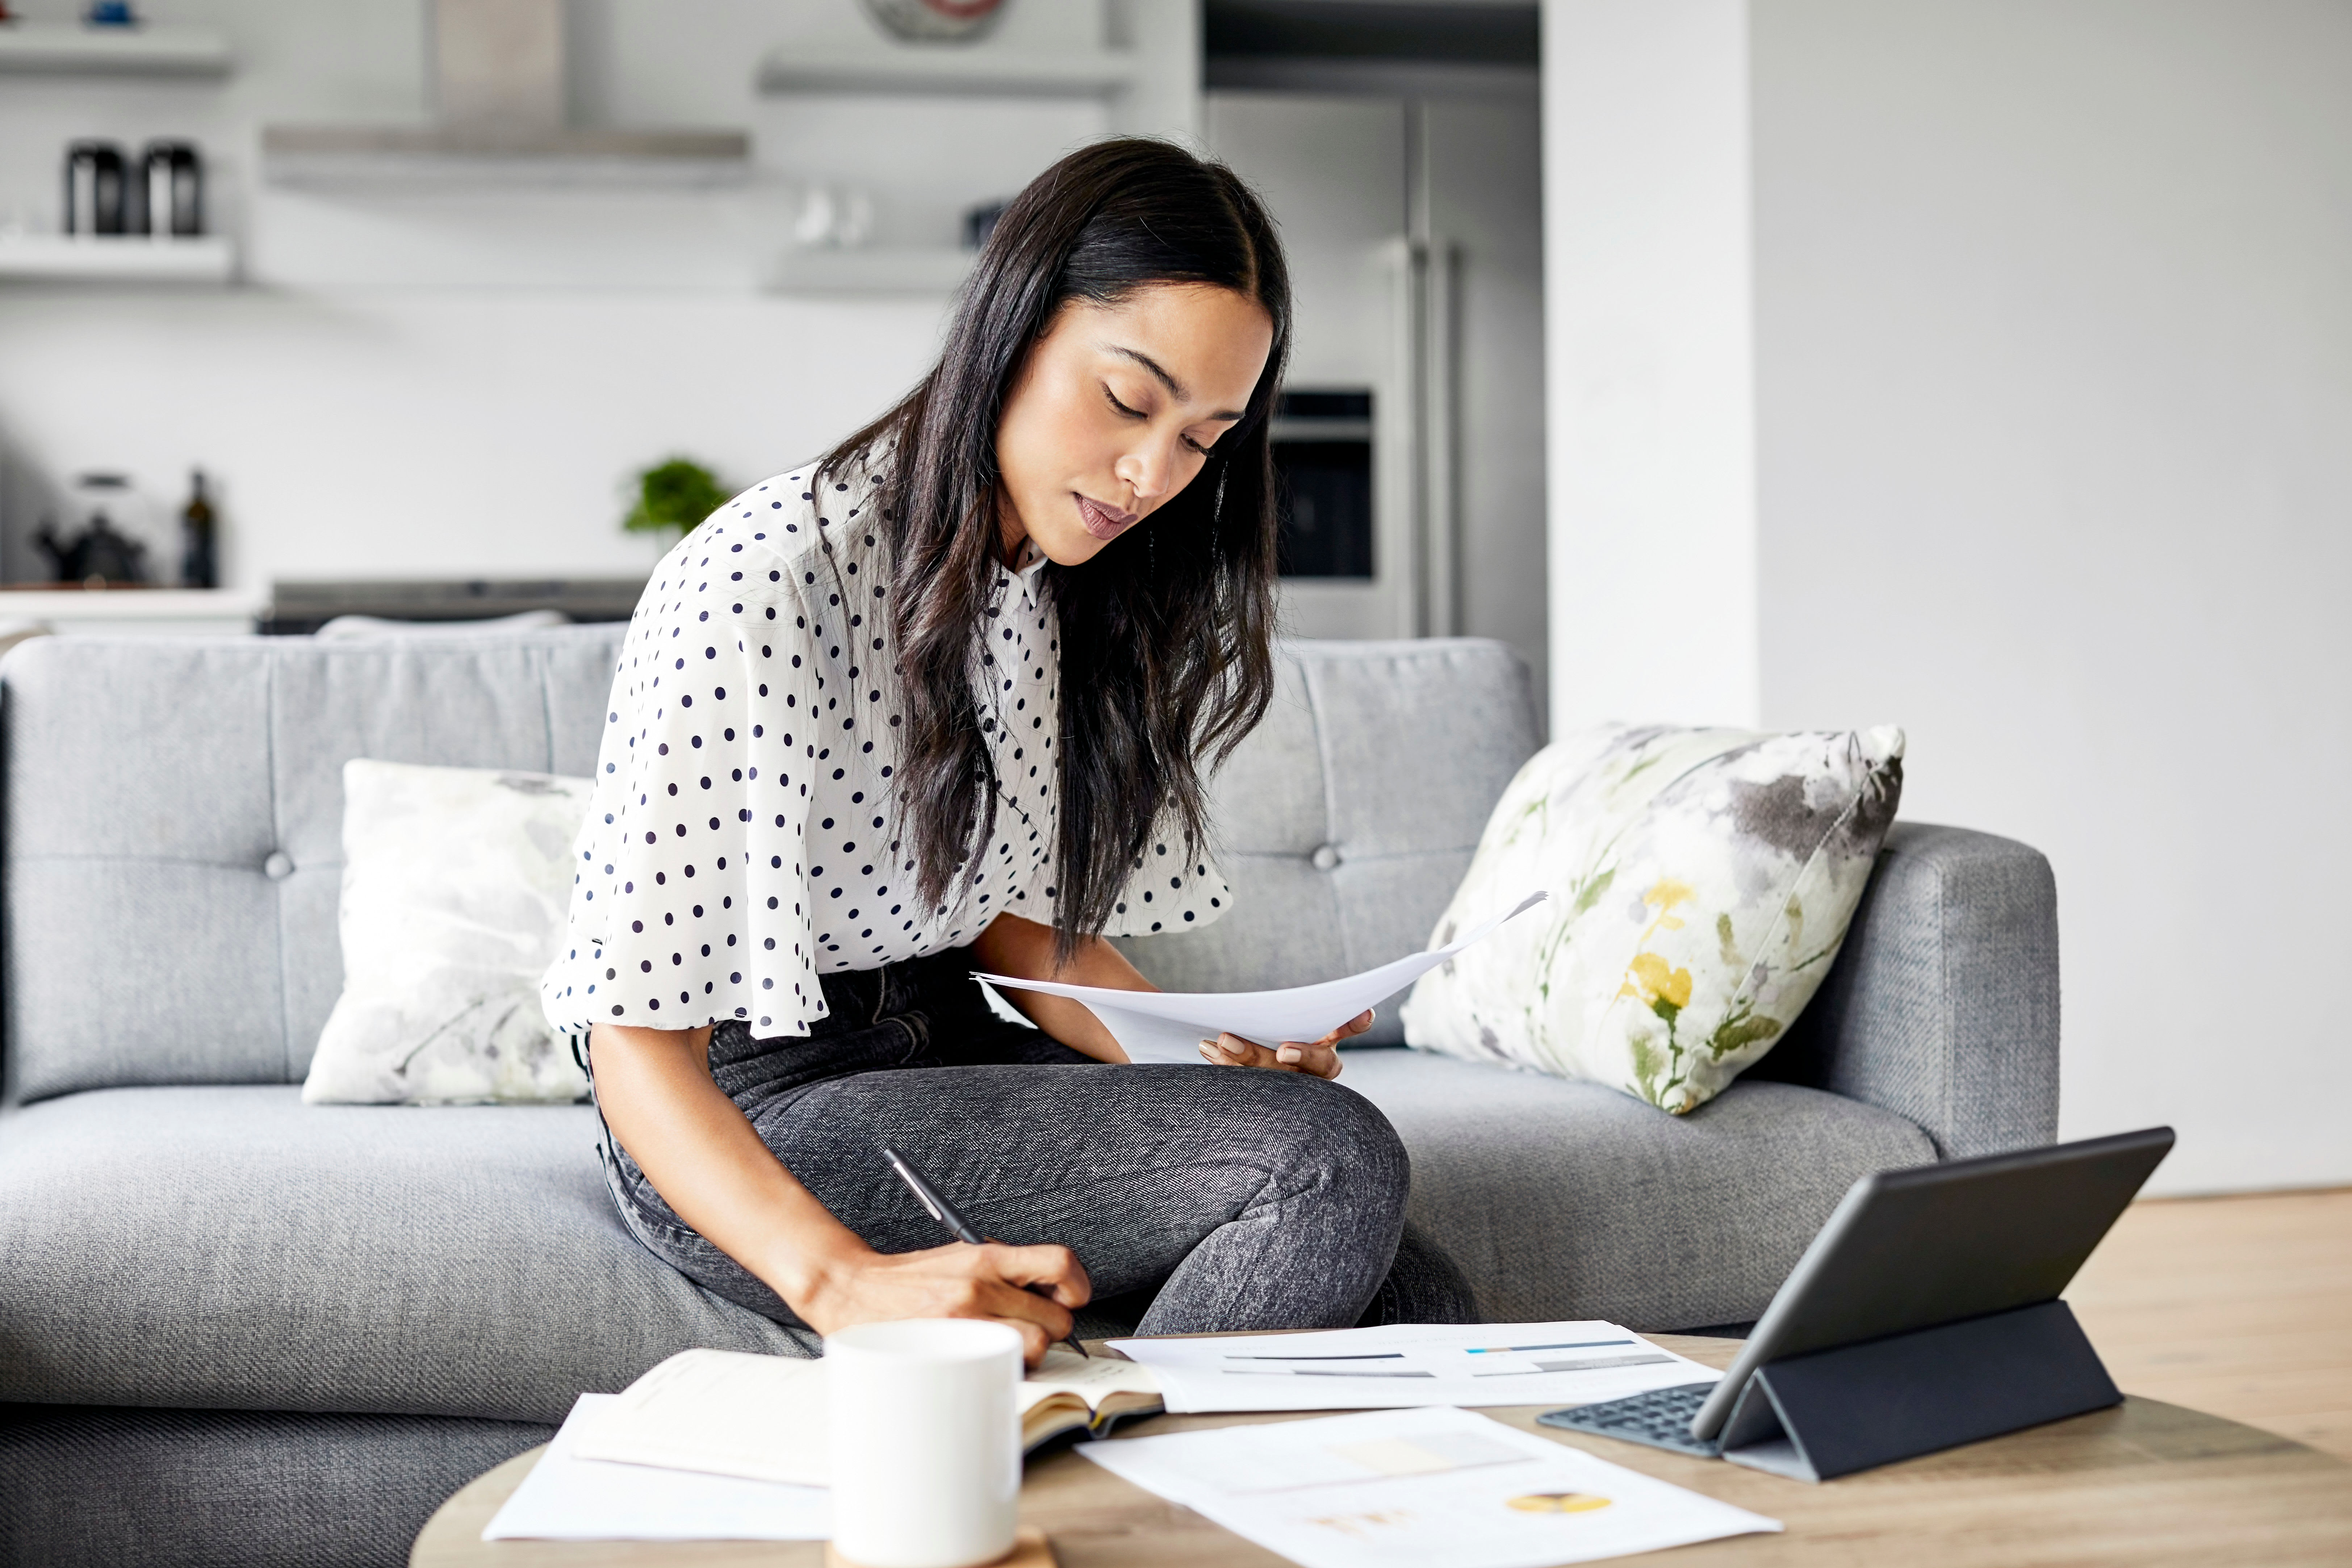 Woman working from home at The 450 in Lombard, Illinois